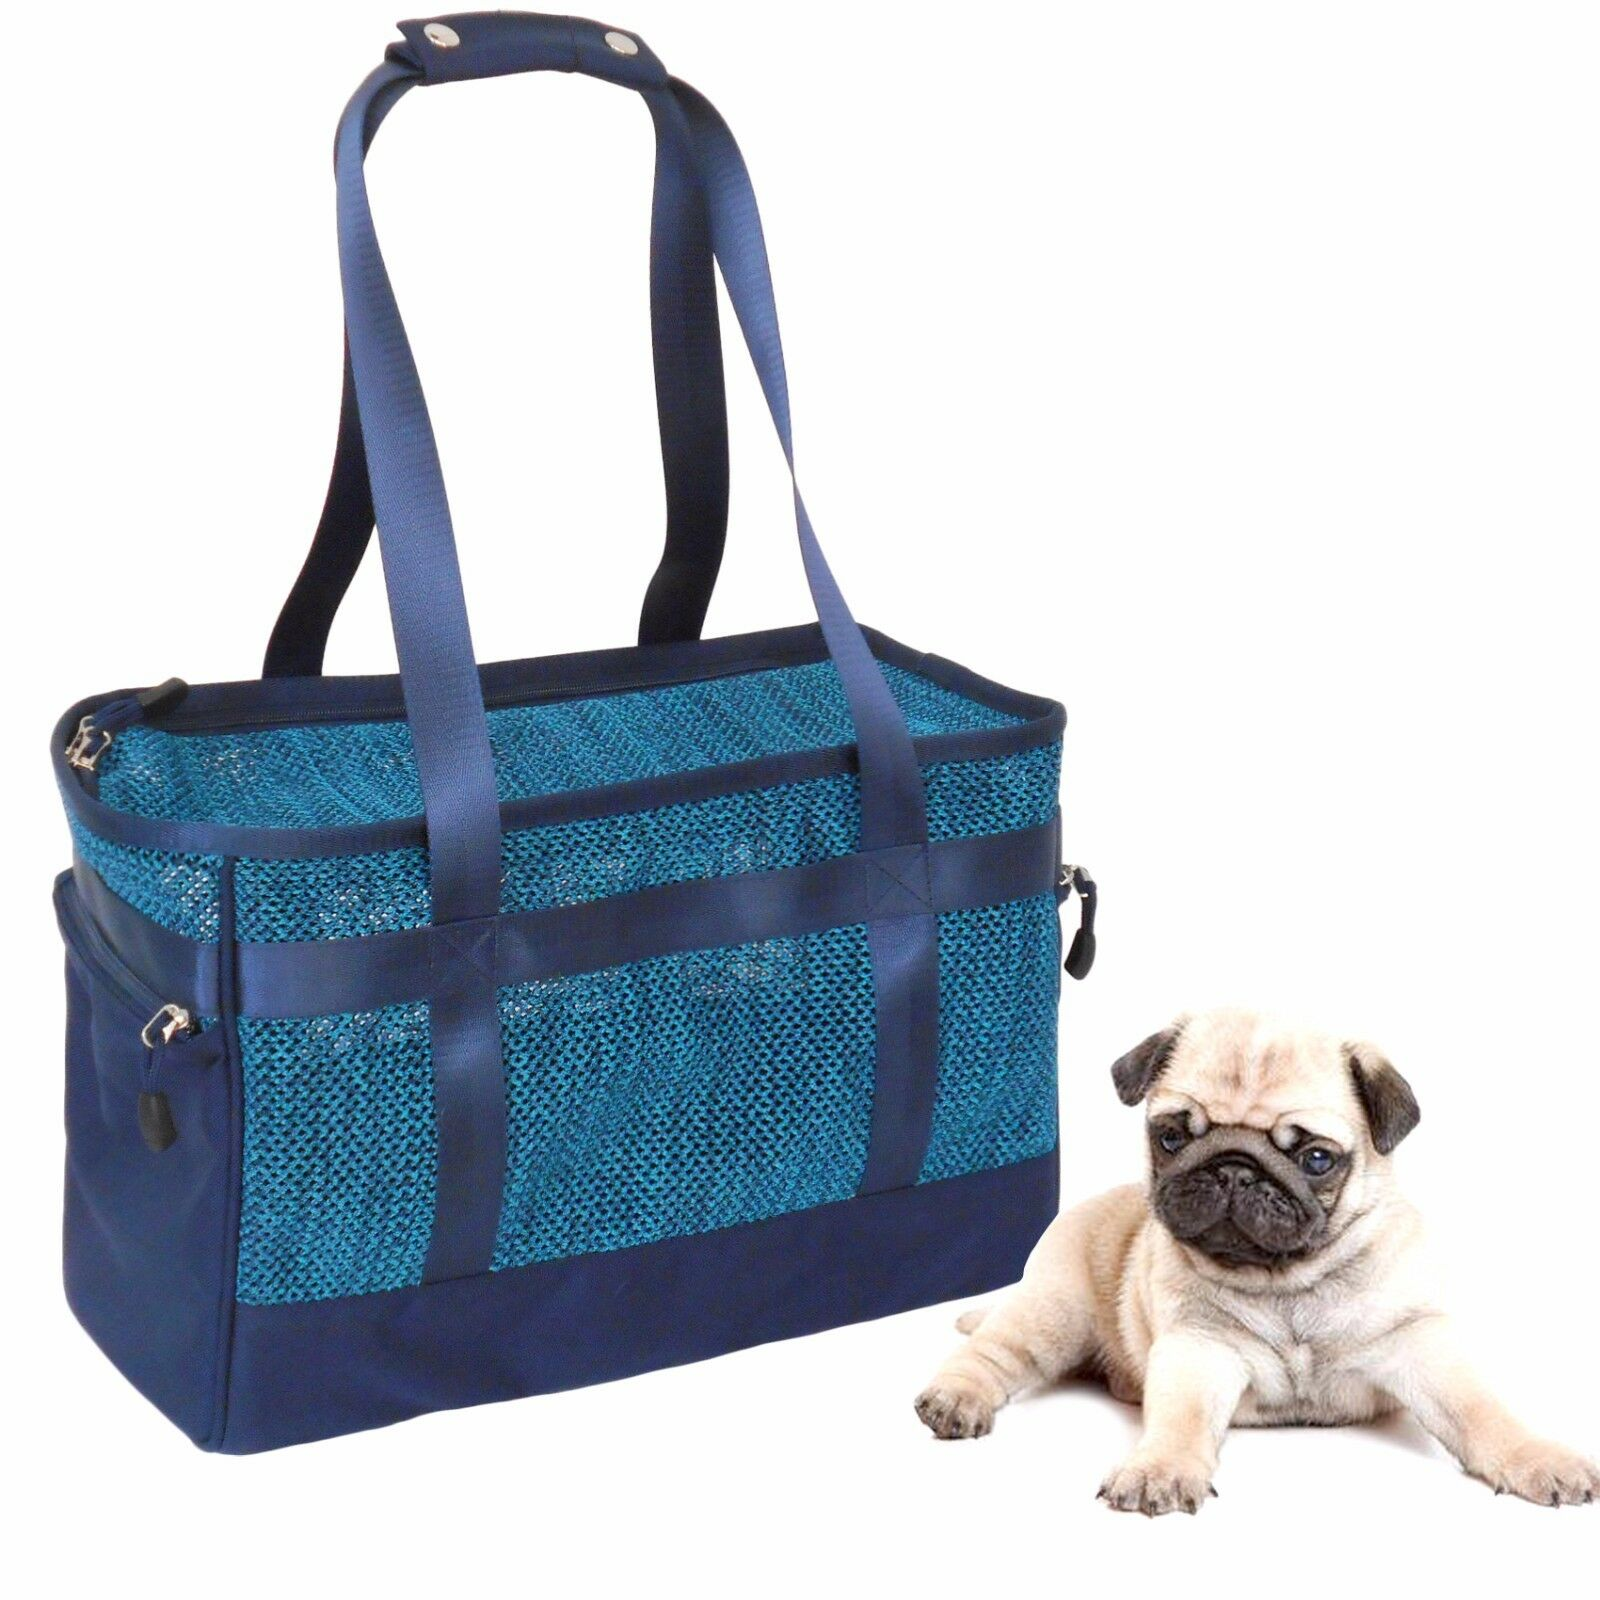 Mesh Pet Dog Cat Travel Carriers Pet Totes Bag Doggy Basket Doggie Handbag Puppy